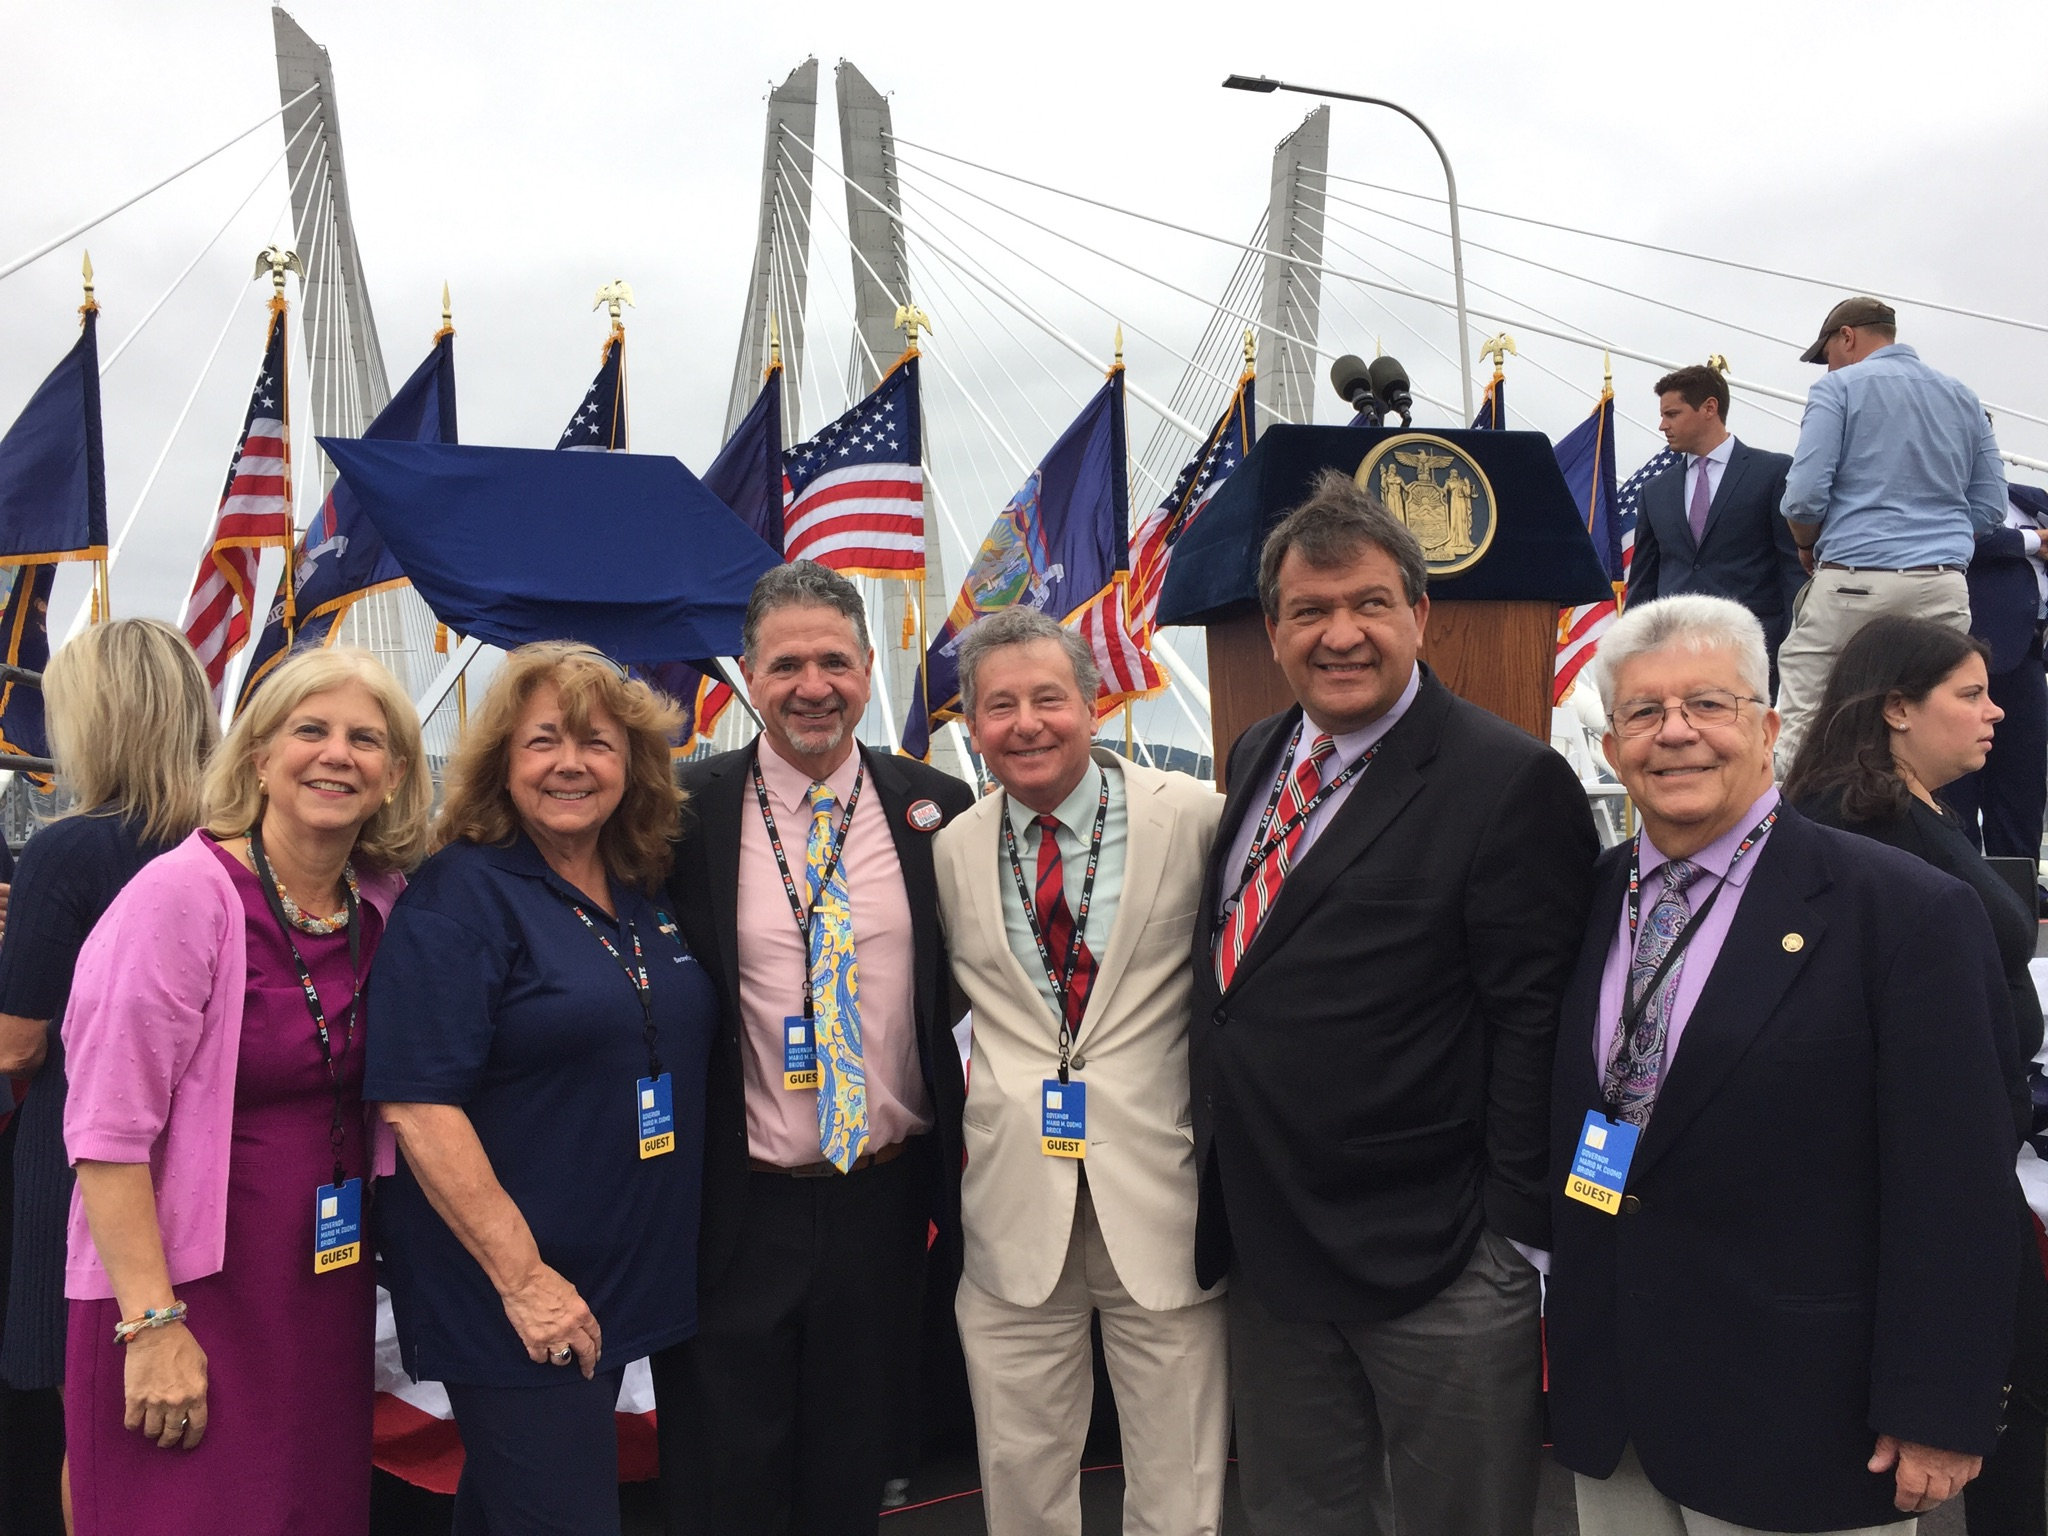 Assemblyman Steve Otis at the Opening Ceremony of the 2nd span of the Mario M. Cuomo Bridge